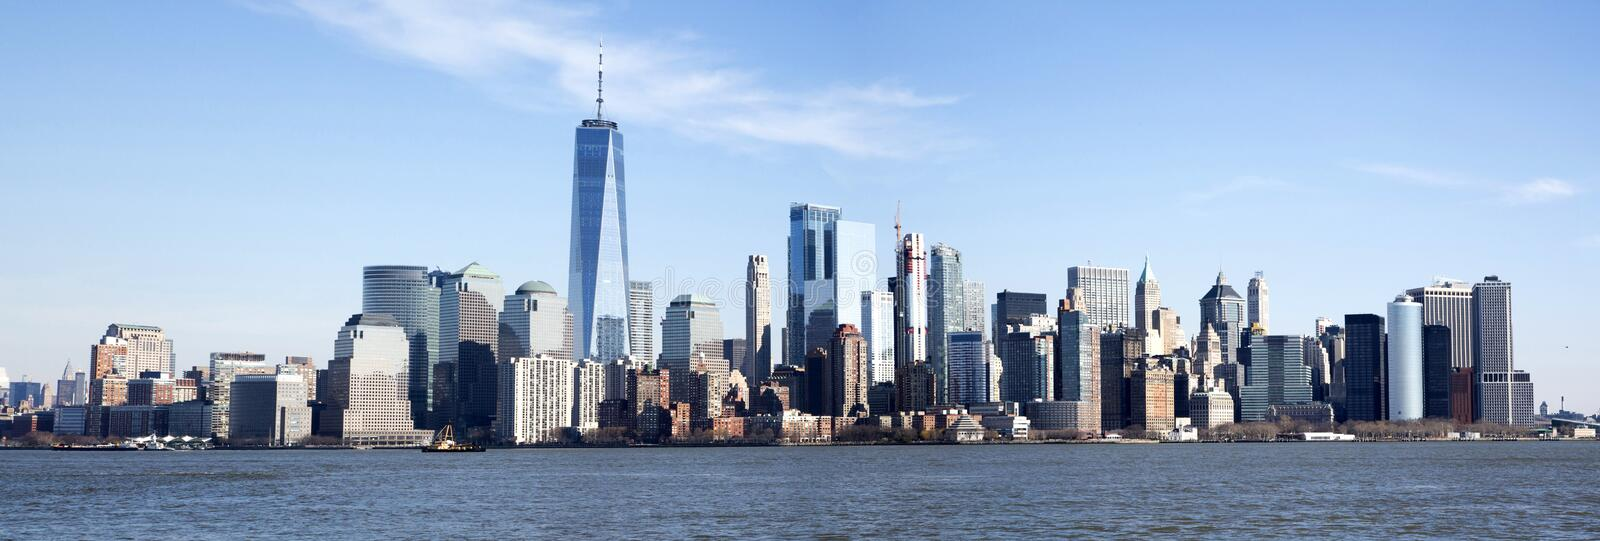 Panoramic photo of the Manhattan skyline. Panorama of the Manhattan skyline seen from Ellis Island across the Hudson River stock images